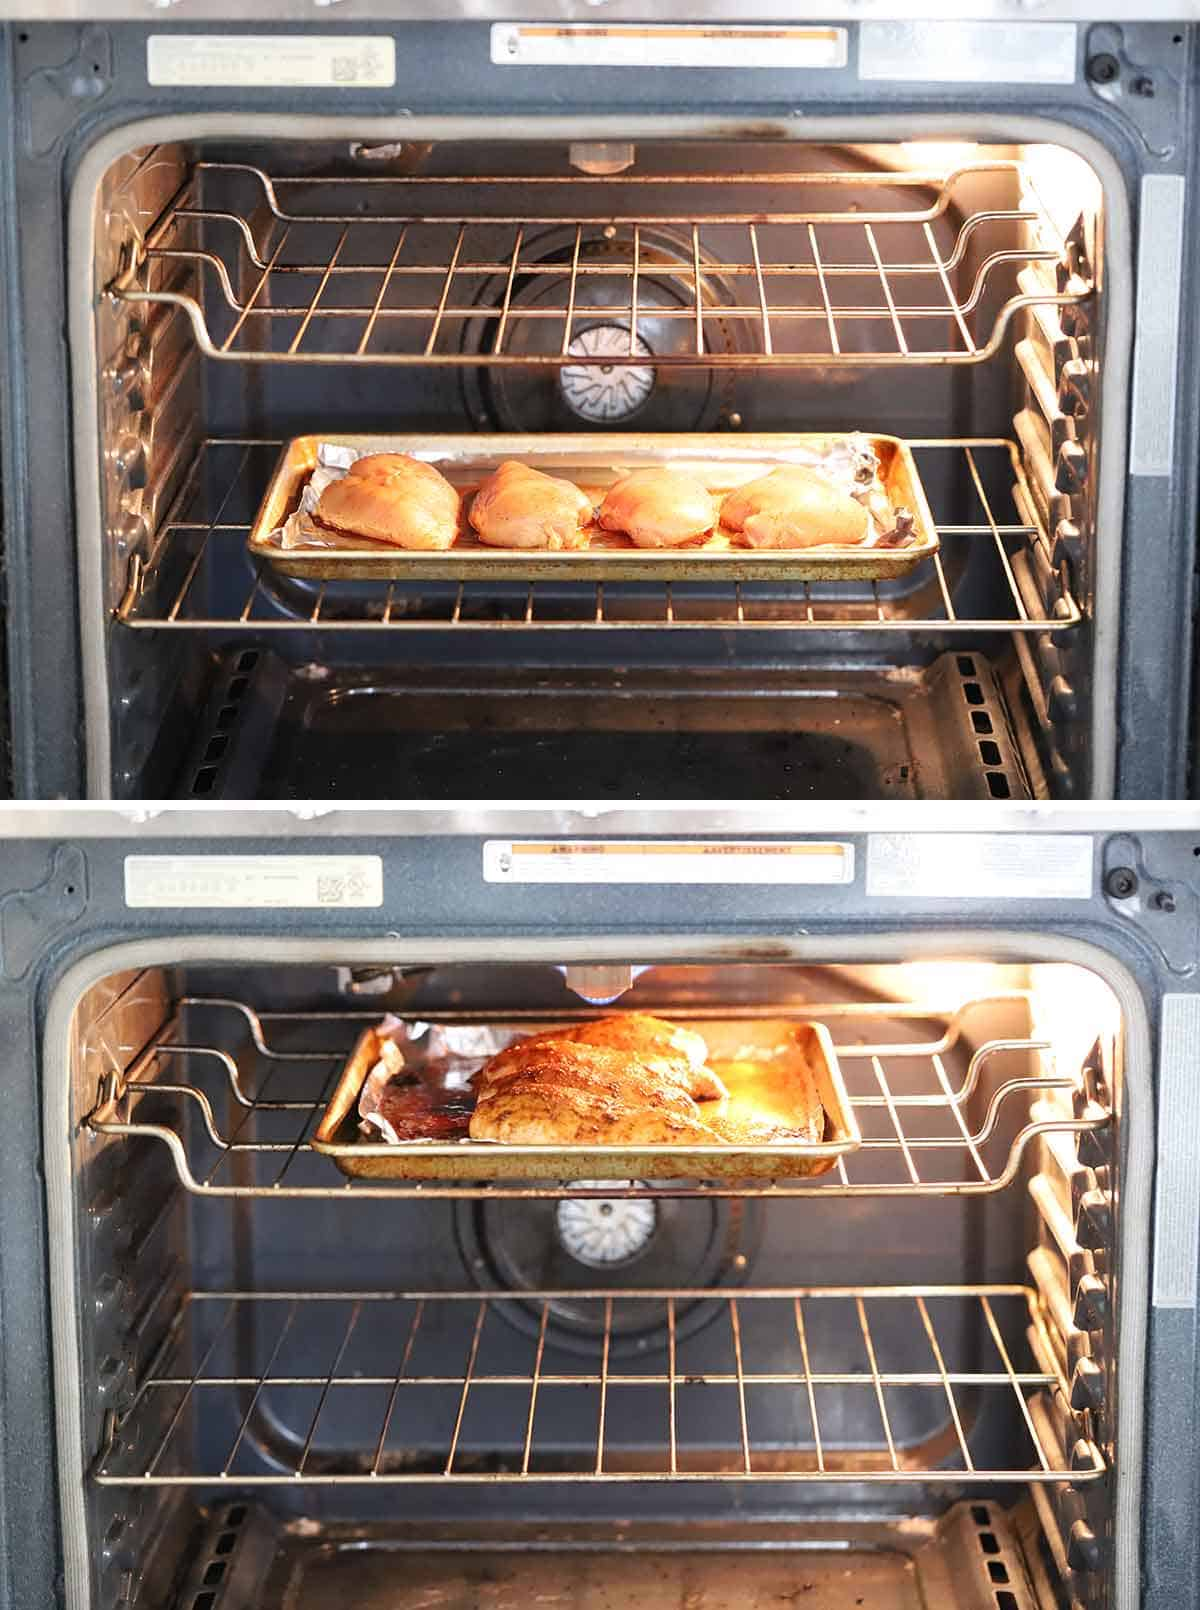 Process collage showing baking chicken breasts first then broiling them.